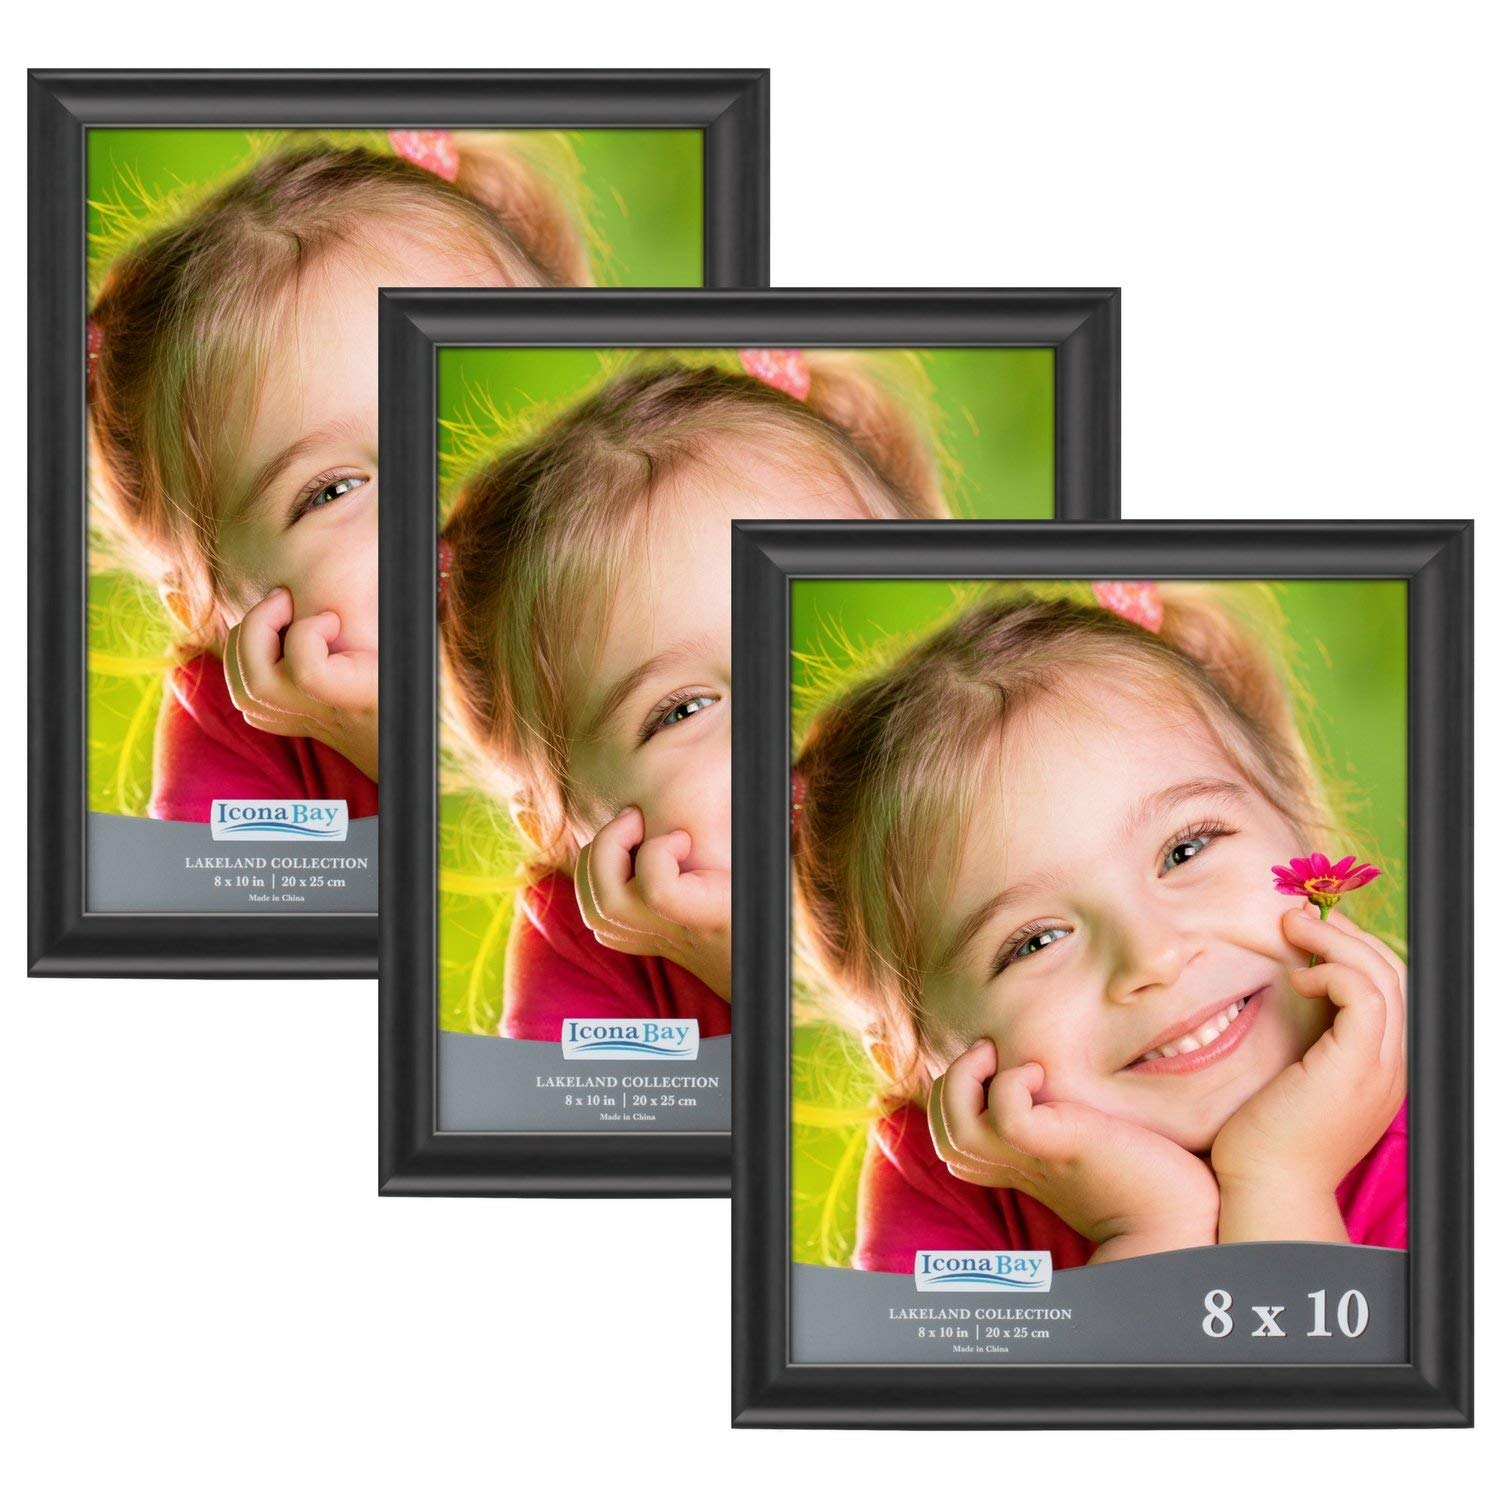 Icona Bay 8x10 Picture Frame (3 Pack, Black Wood Finish), Photo Frames Set for Wall or Table, Photo Frame 8x10 Set, Black Picture Frames 8 x 10 Set, Black Photo Frames 8x10, Lakeland Collection